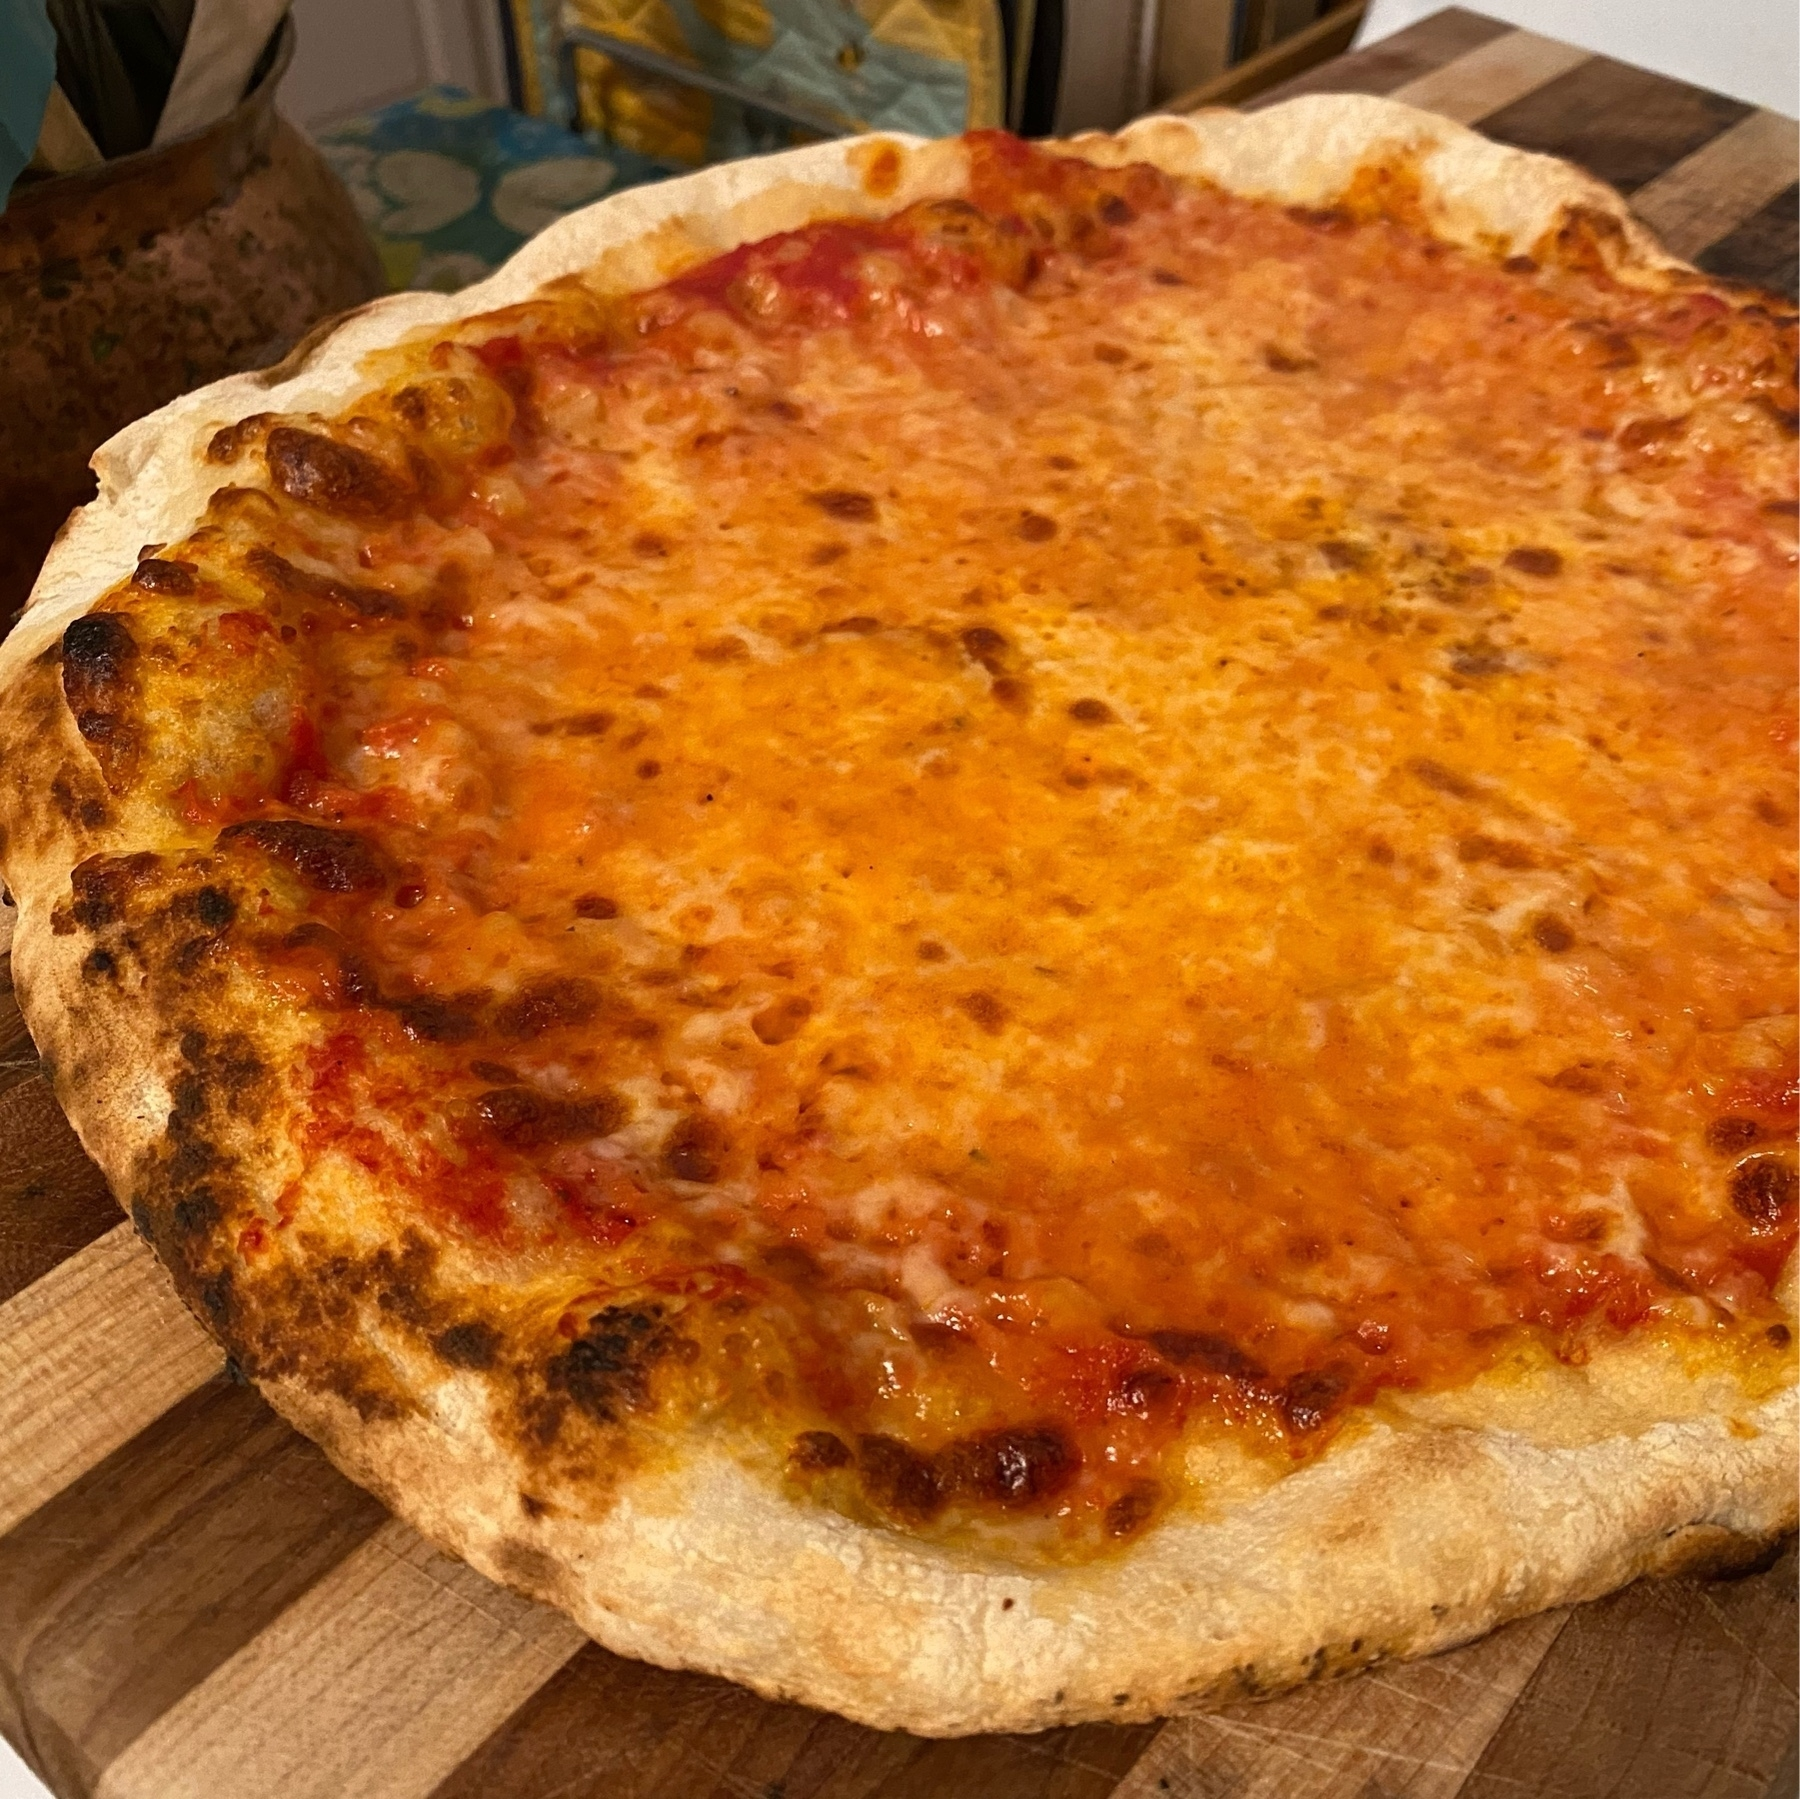 Picture of a fully baked cheese pizza